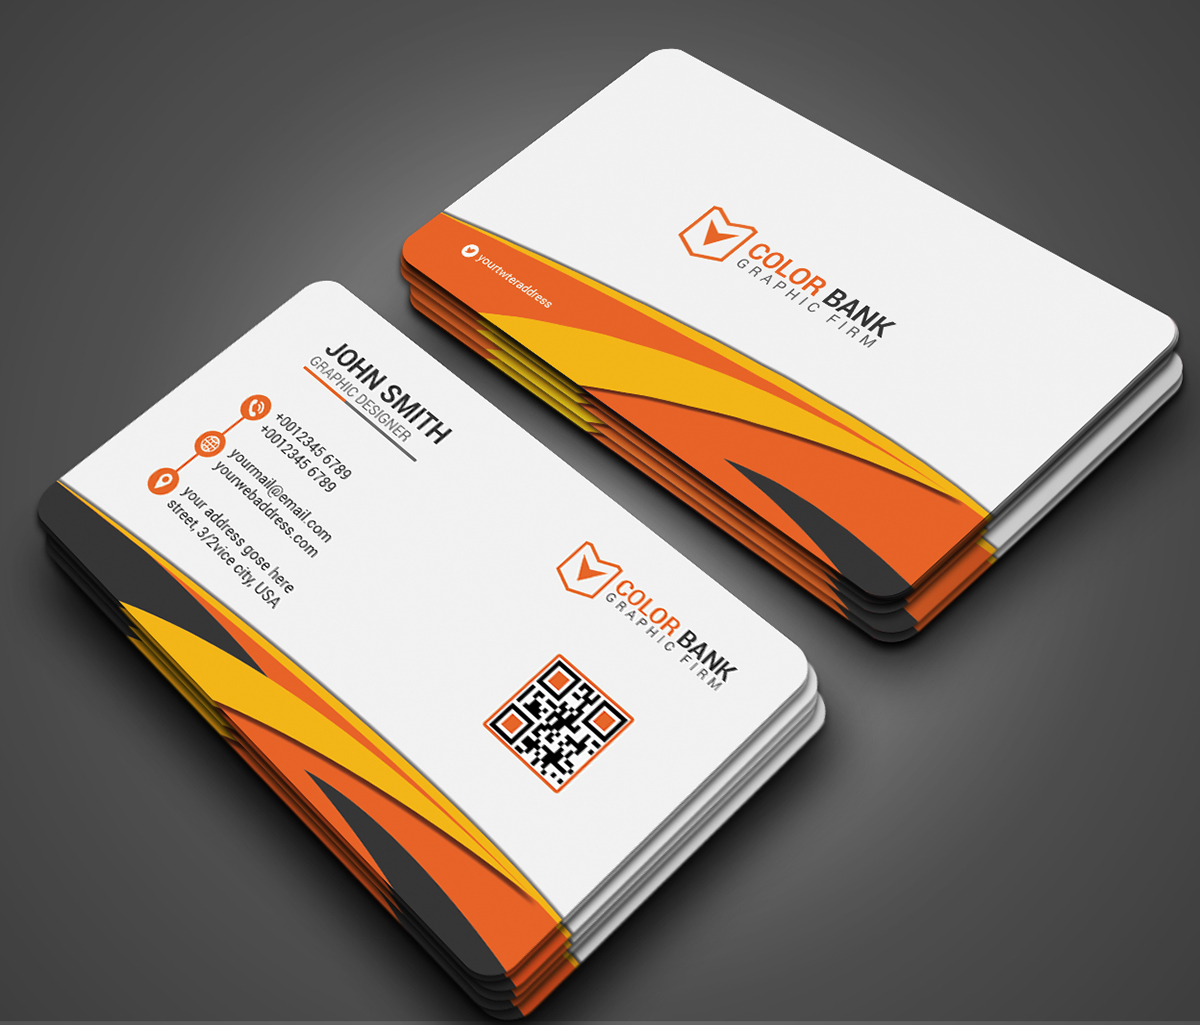 Free PSD files, Business Card on Behance